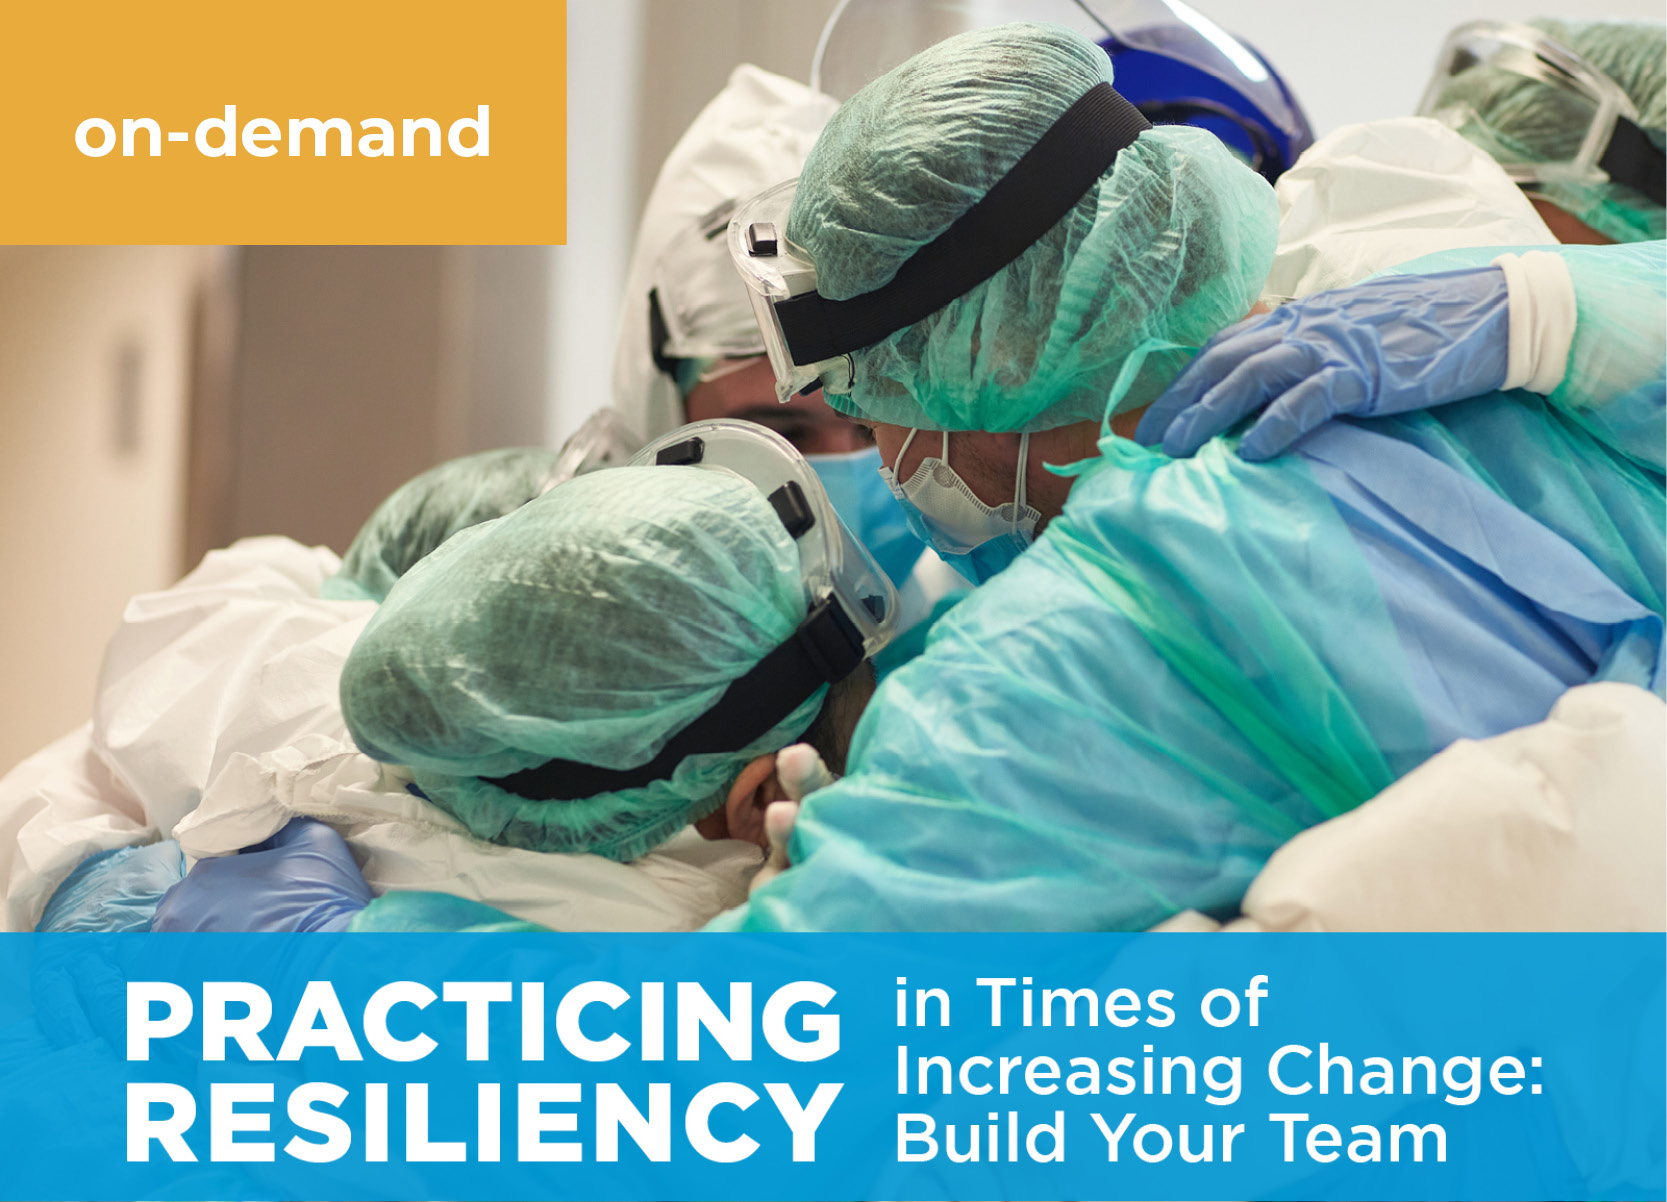 Practicing Resiliency in Times of Increasing Change: Build Your Team